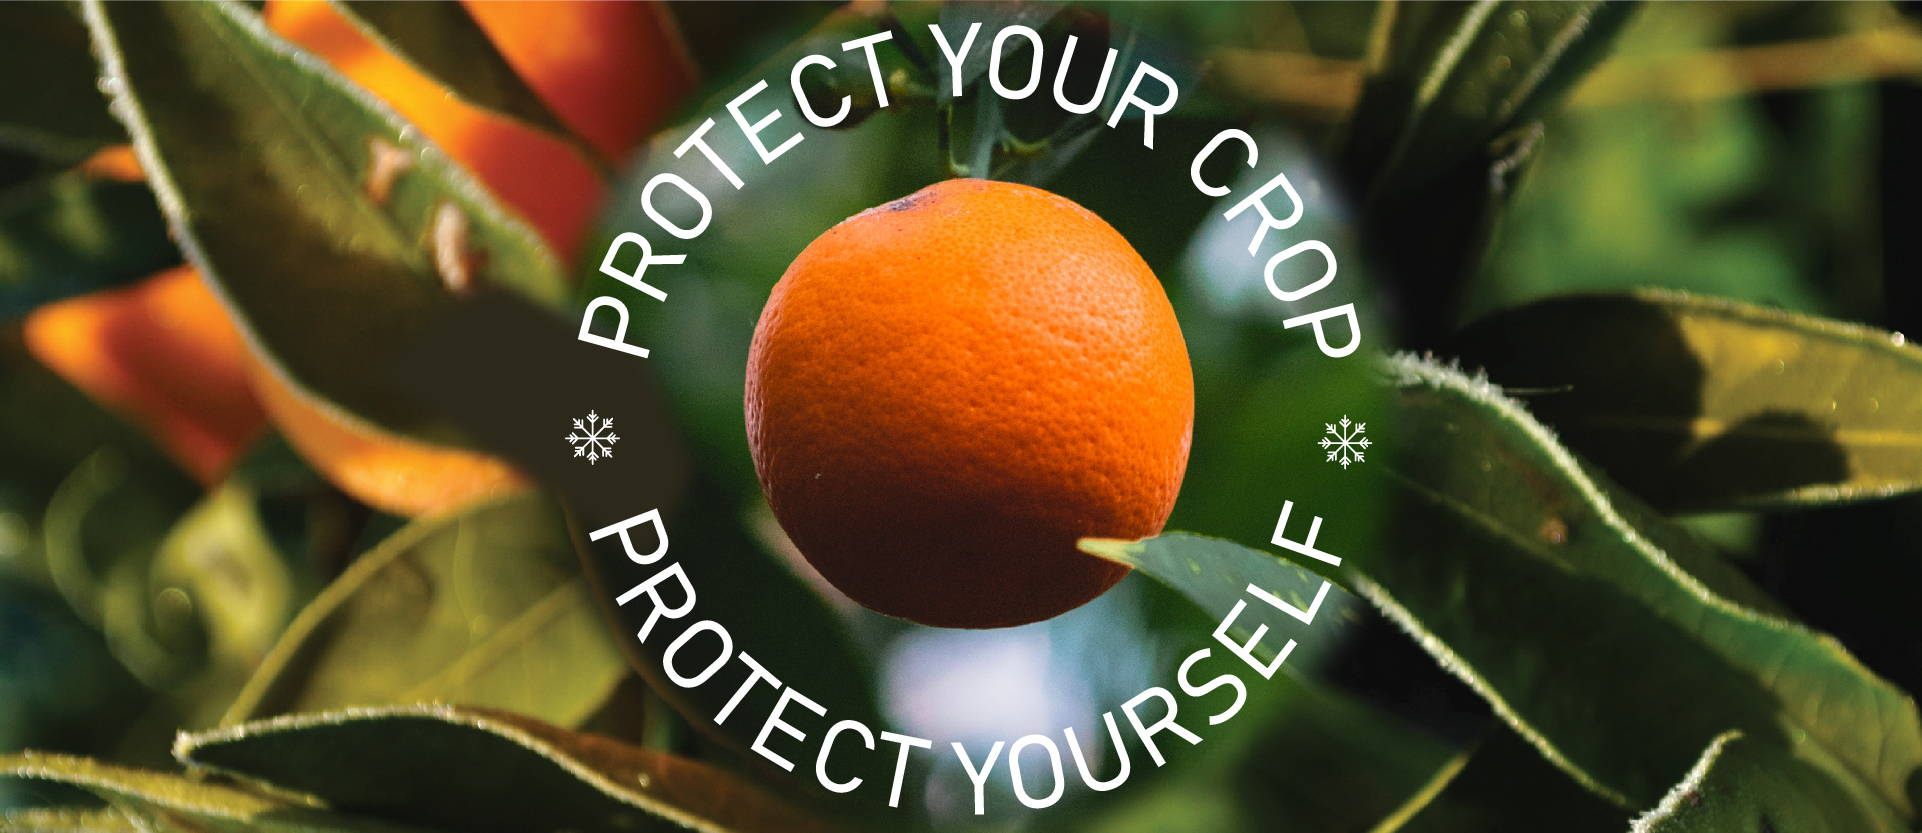 Protect your crop.  Protect yourself.